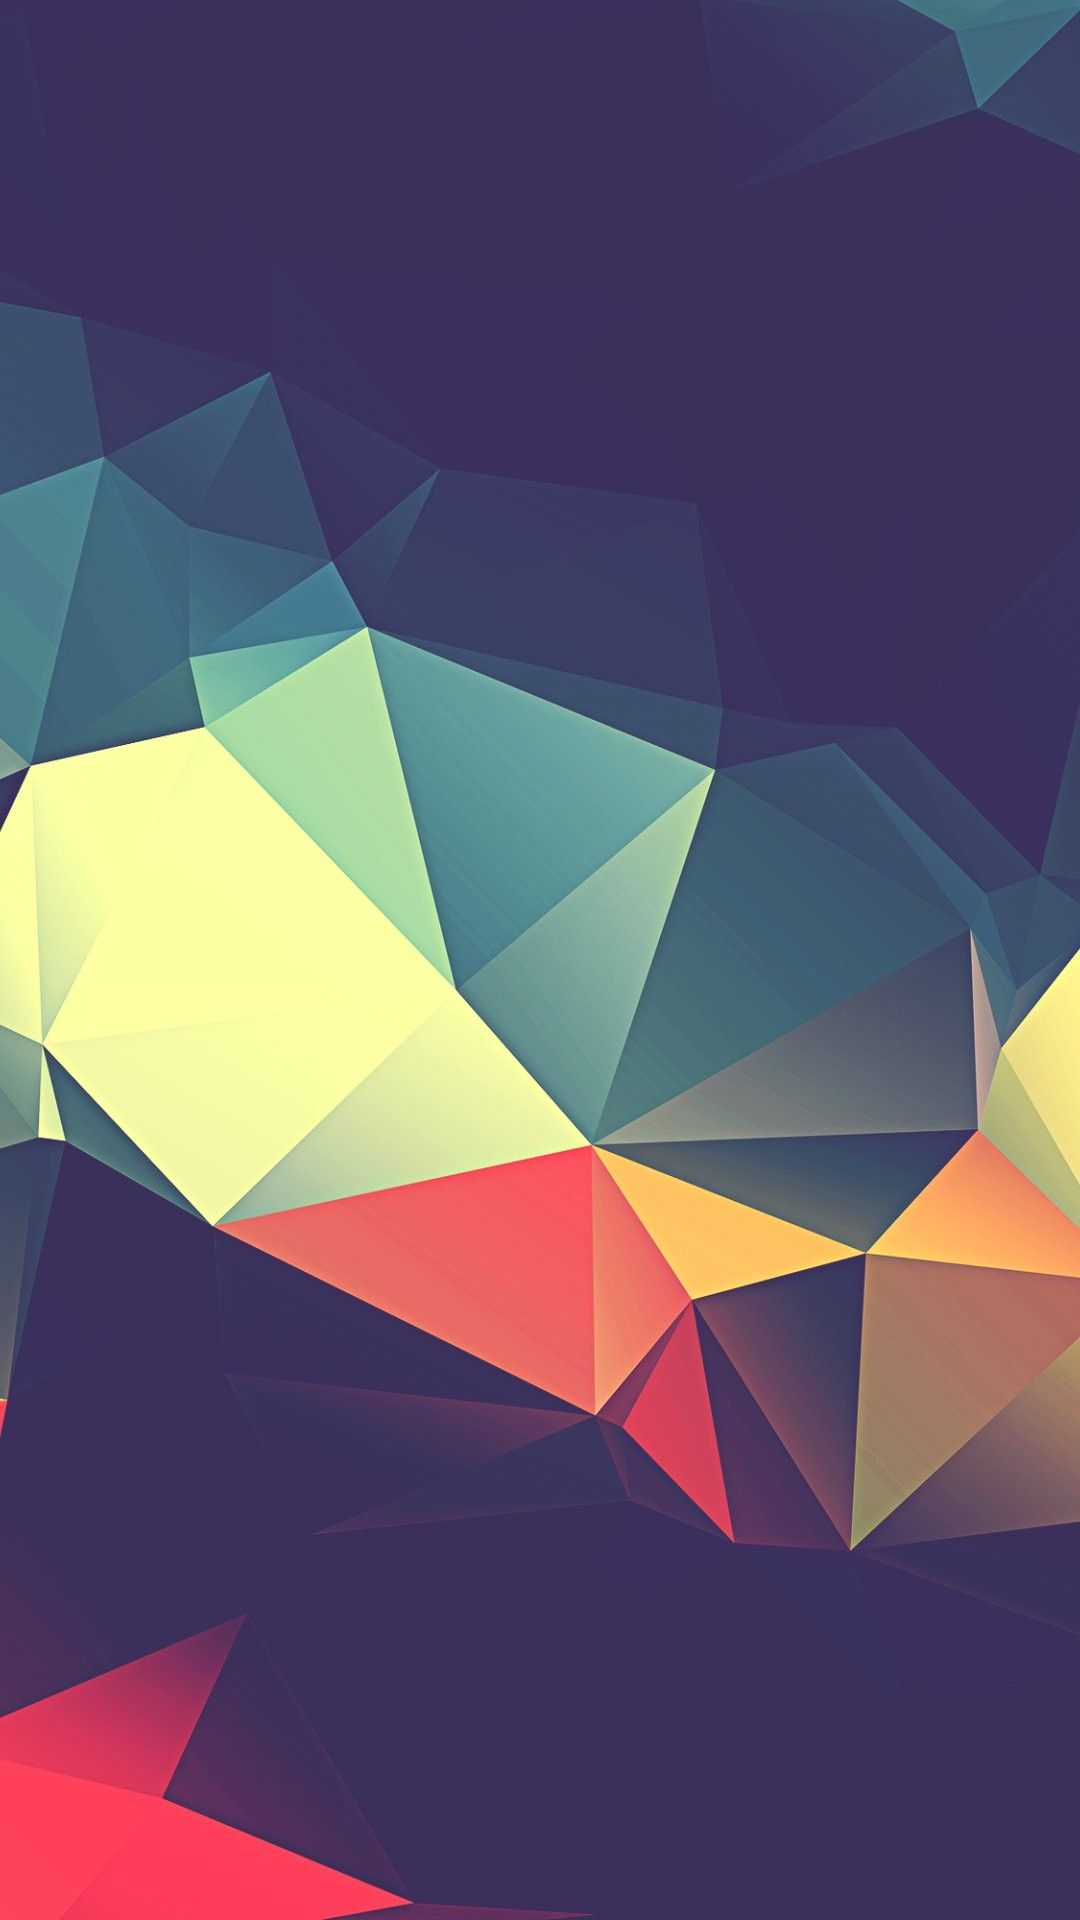 low poly iphone 6 plus wallpaper 35941 - abstract iphone 6 plus